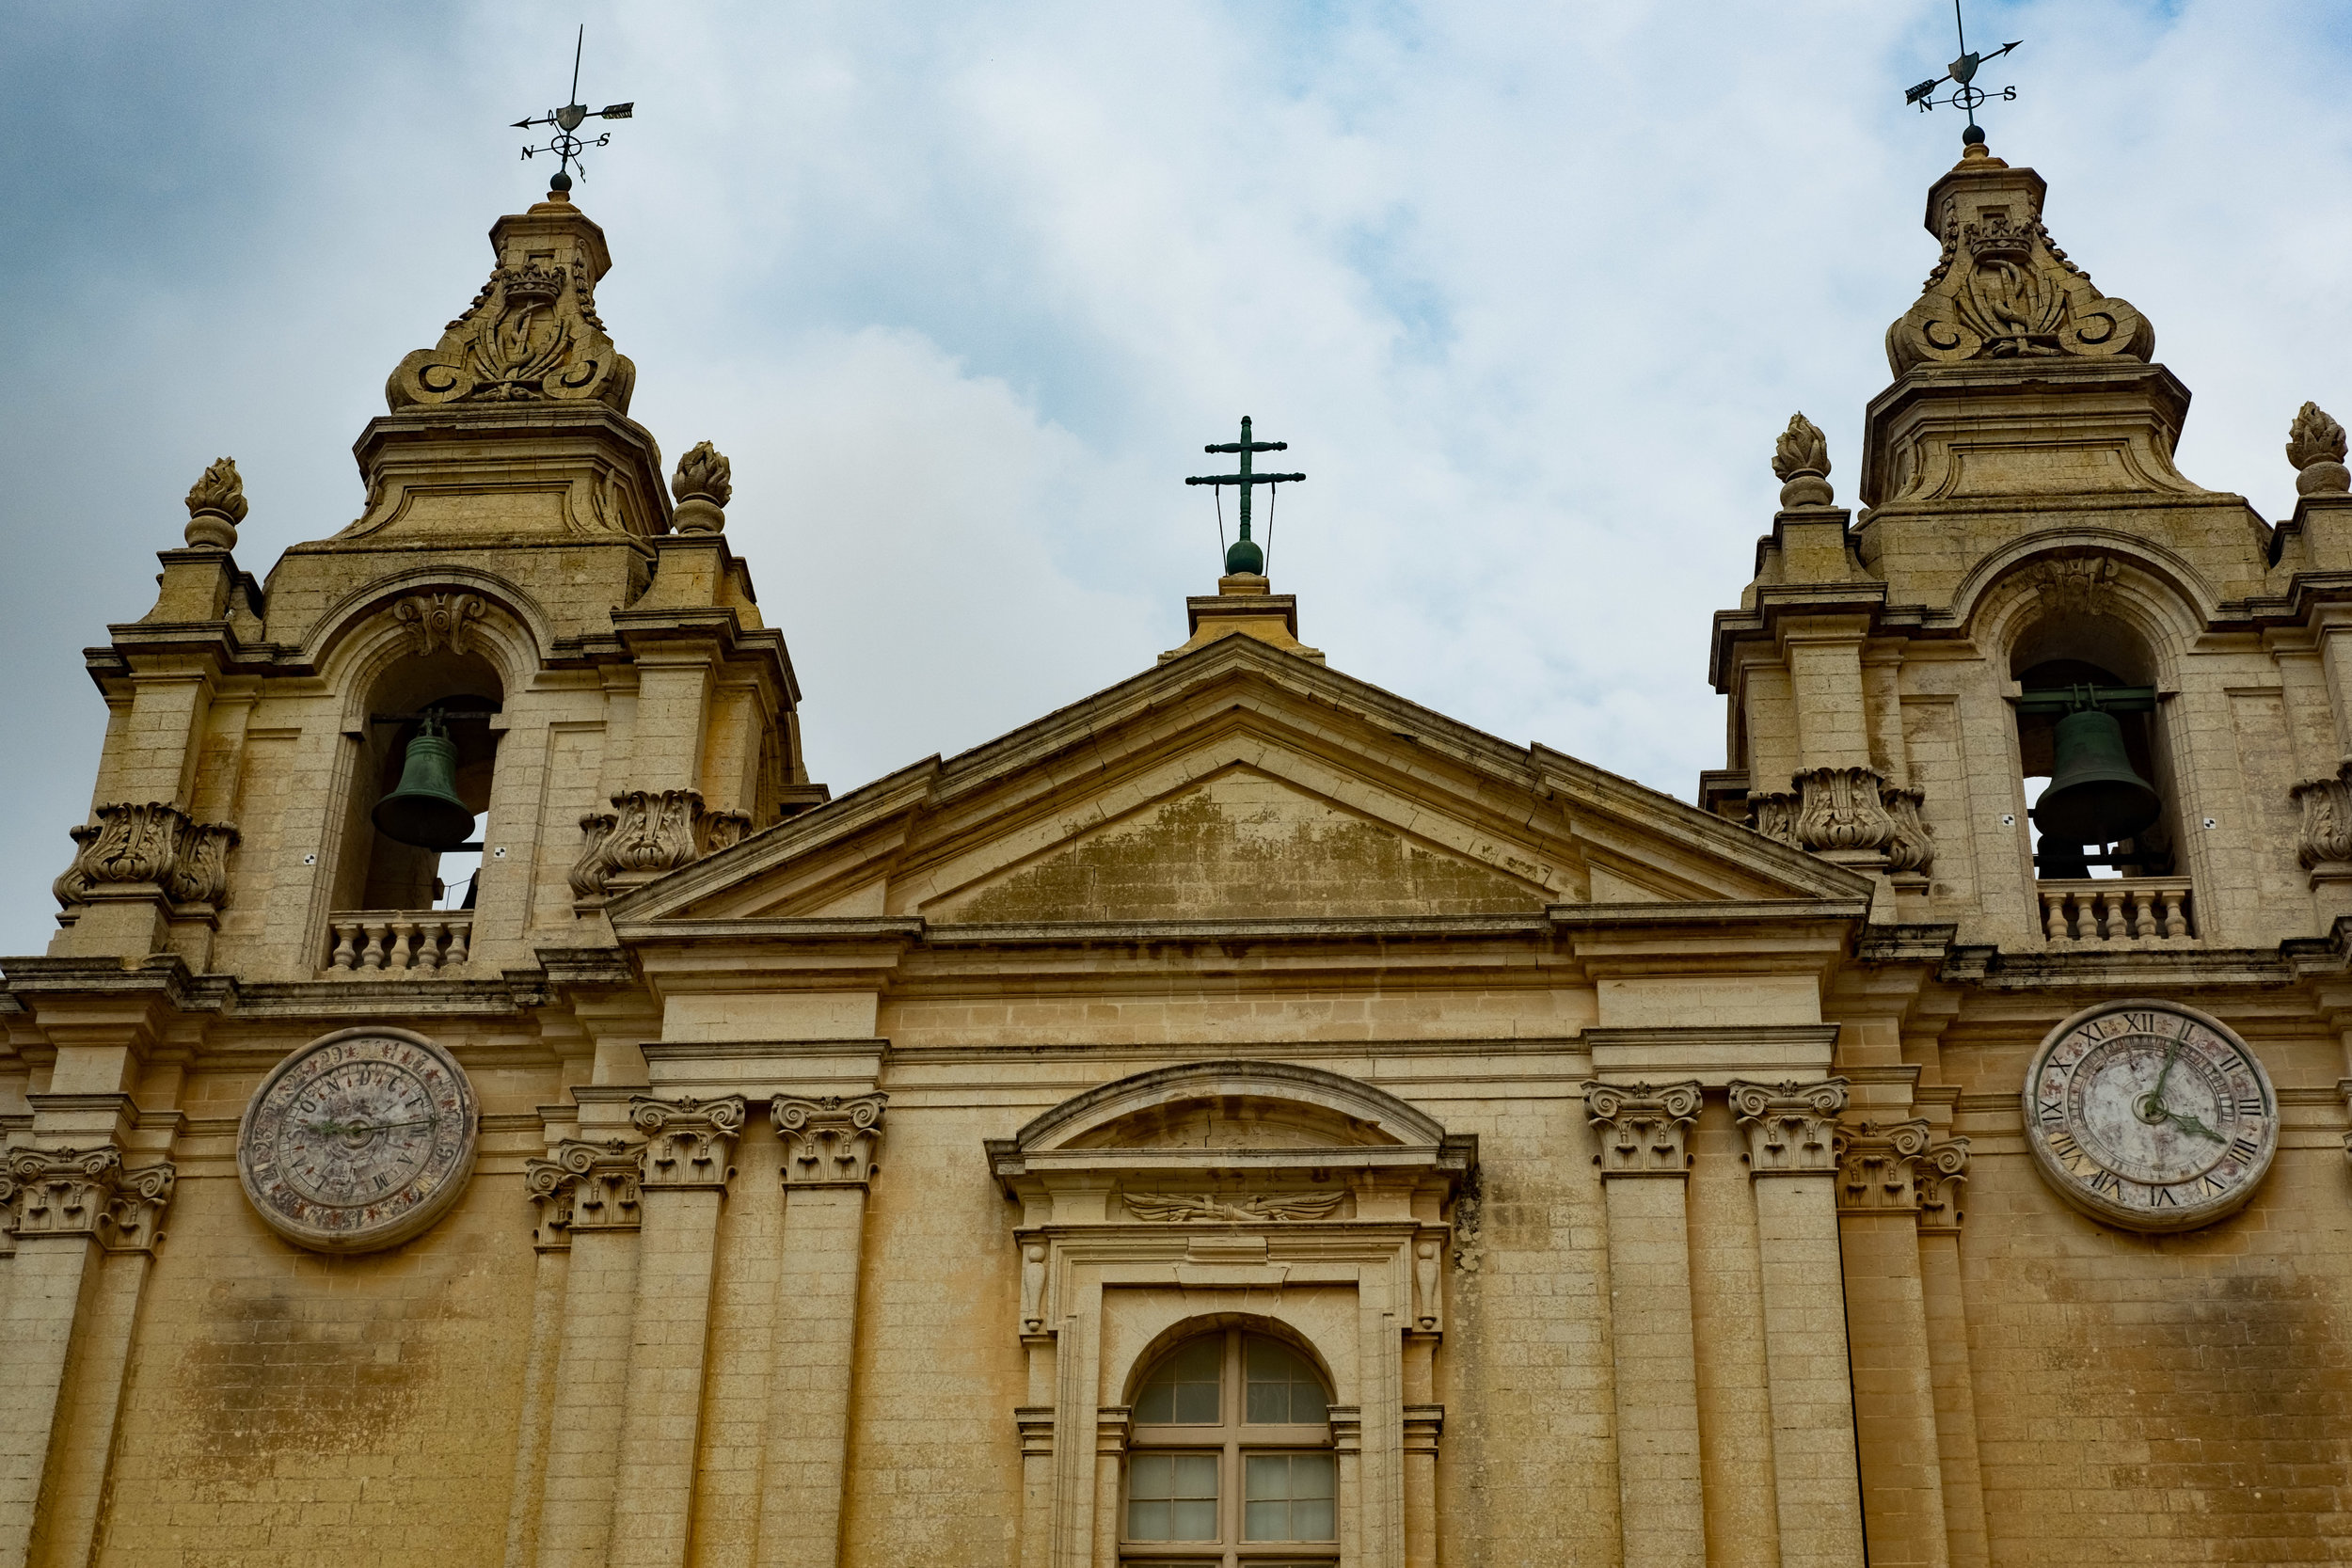 Catholicism - Malta is 98% Catholic. An estimate 60% attend Mass weekly.